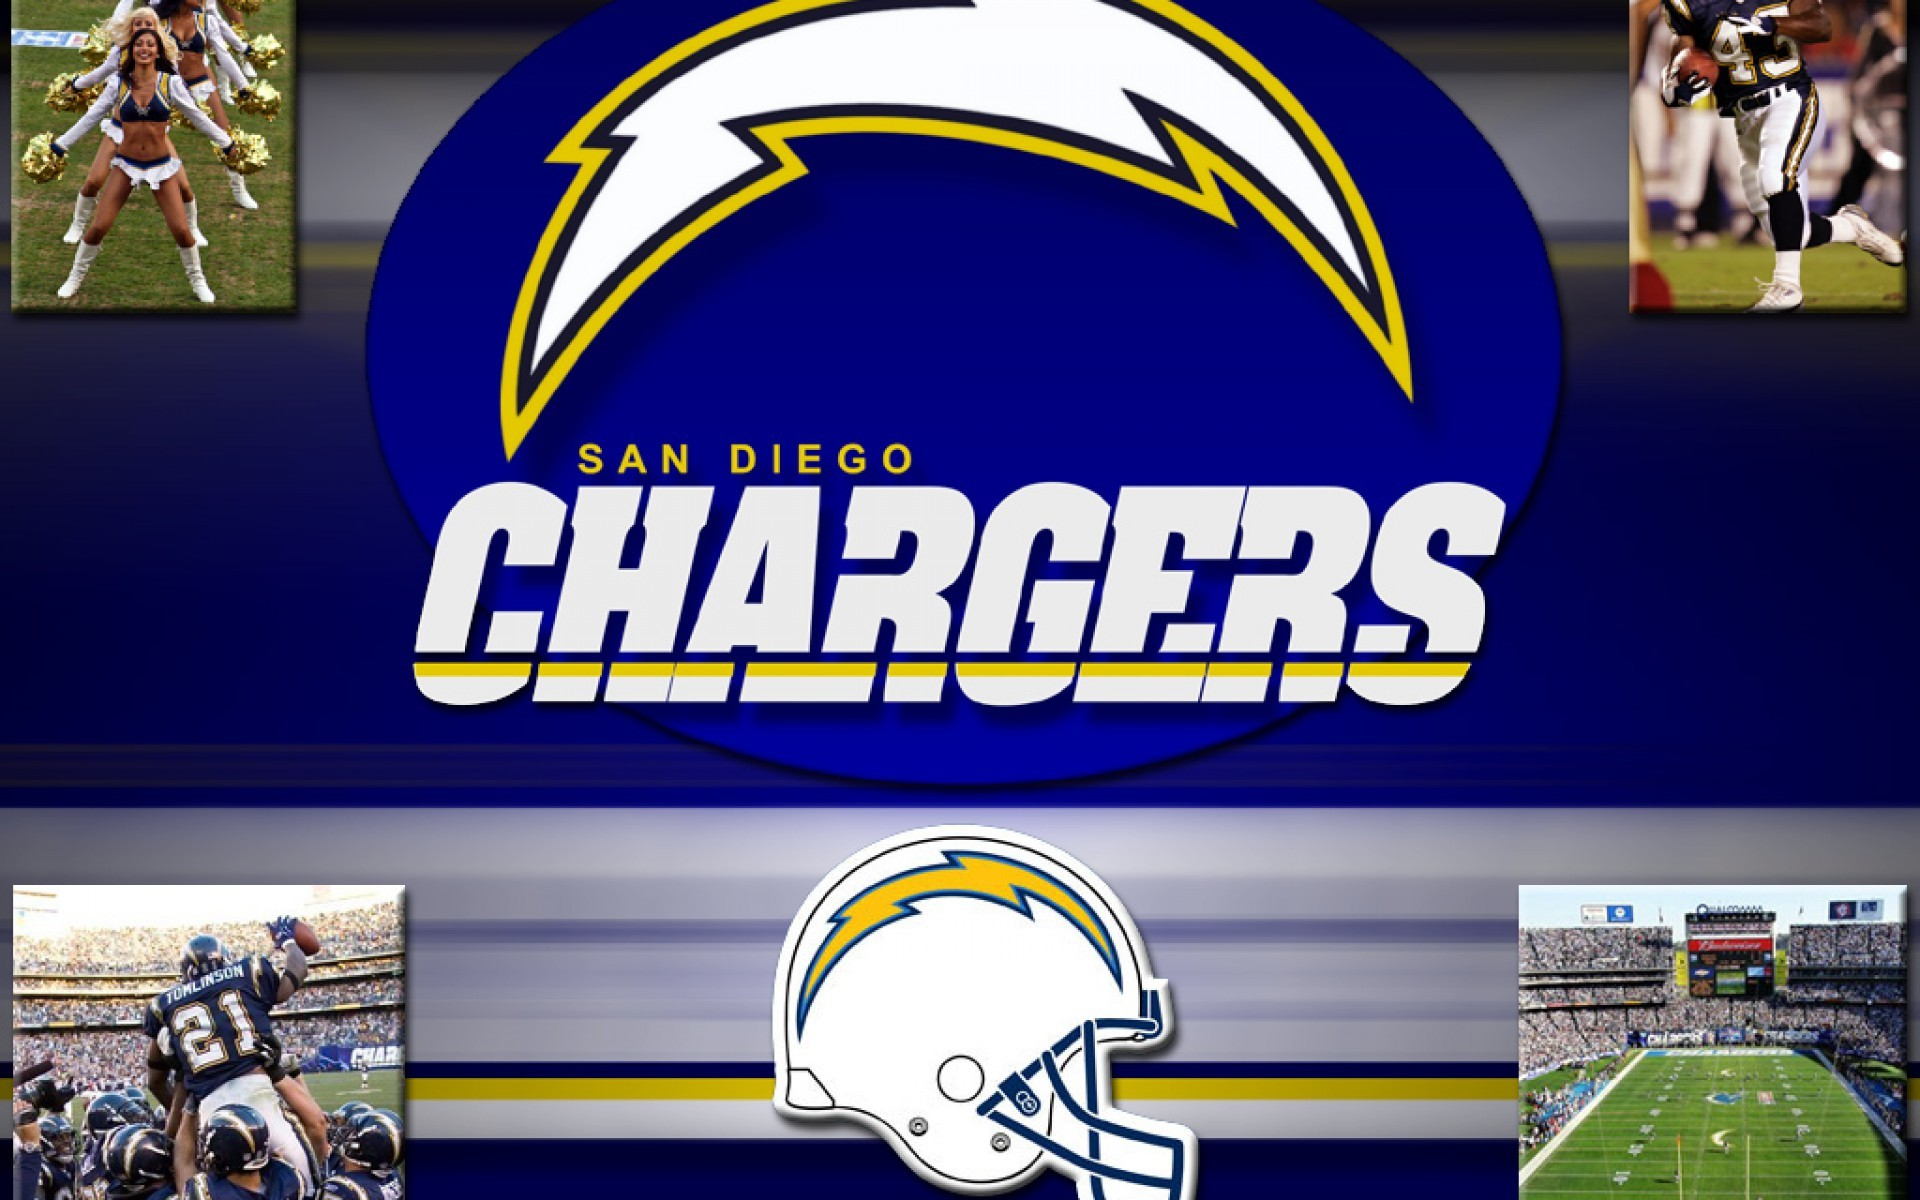 1920x1200 SAN DIEGO CHARGERS Nfl Football Nm Wallpaper | 1920X1200 | 158087